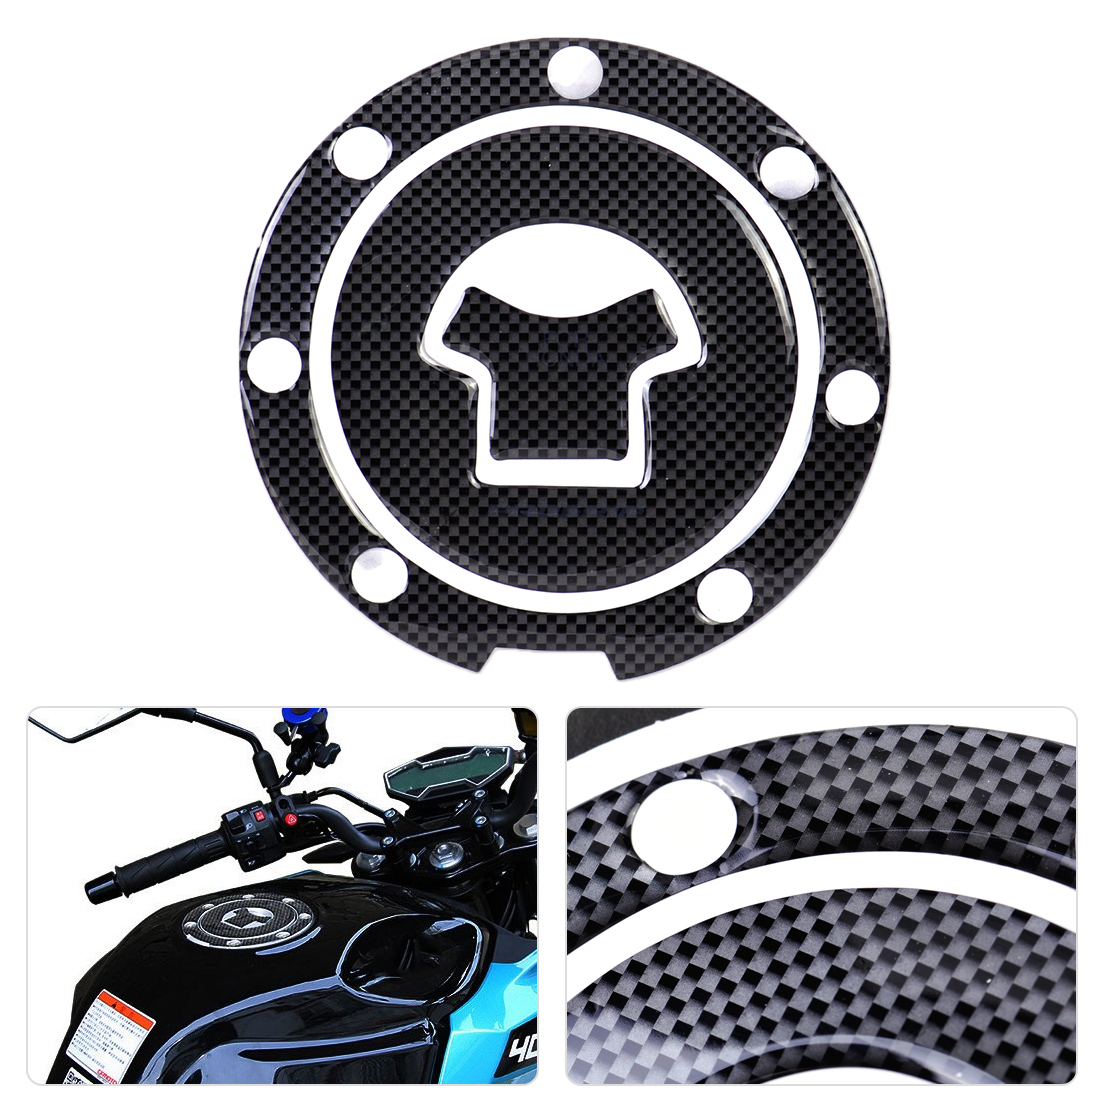 DWCX Black Motorcycle Sticker Fuel Gas Cap Tank Cover Pad Sticker Decal Protector for Honda CBR600RR CBR250R Interceptor 1000